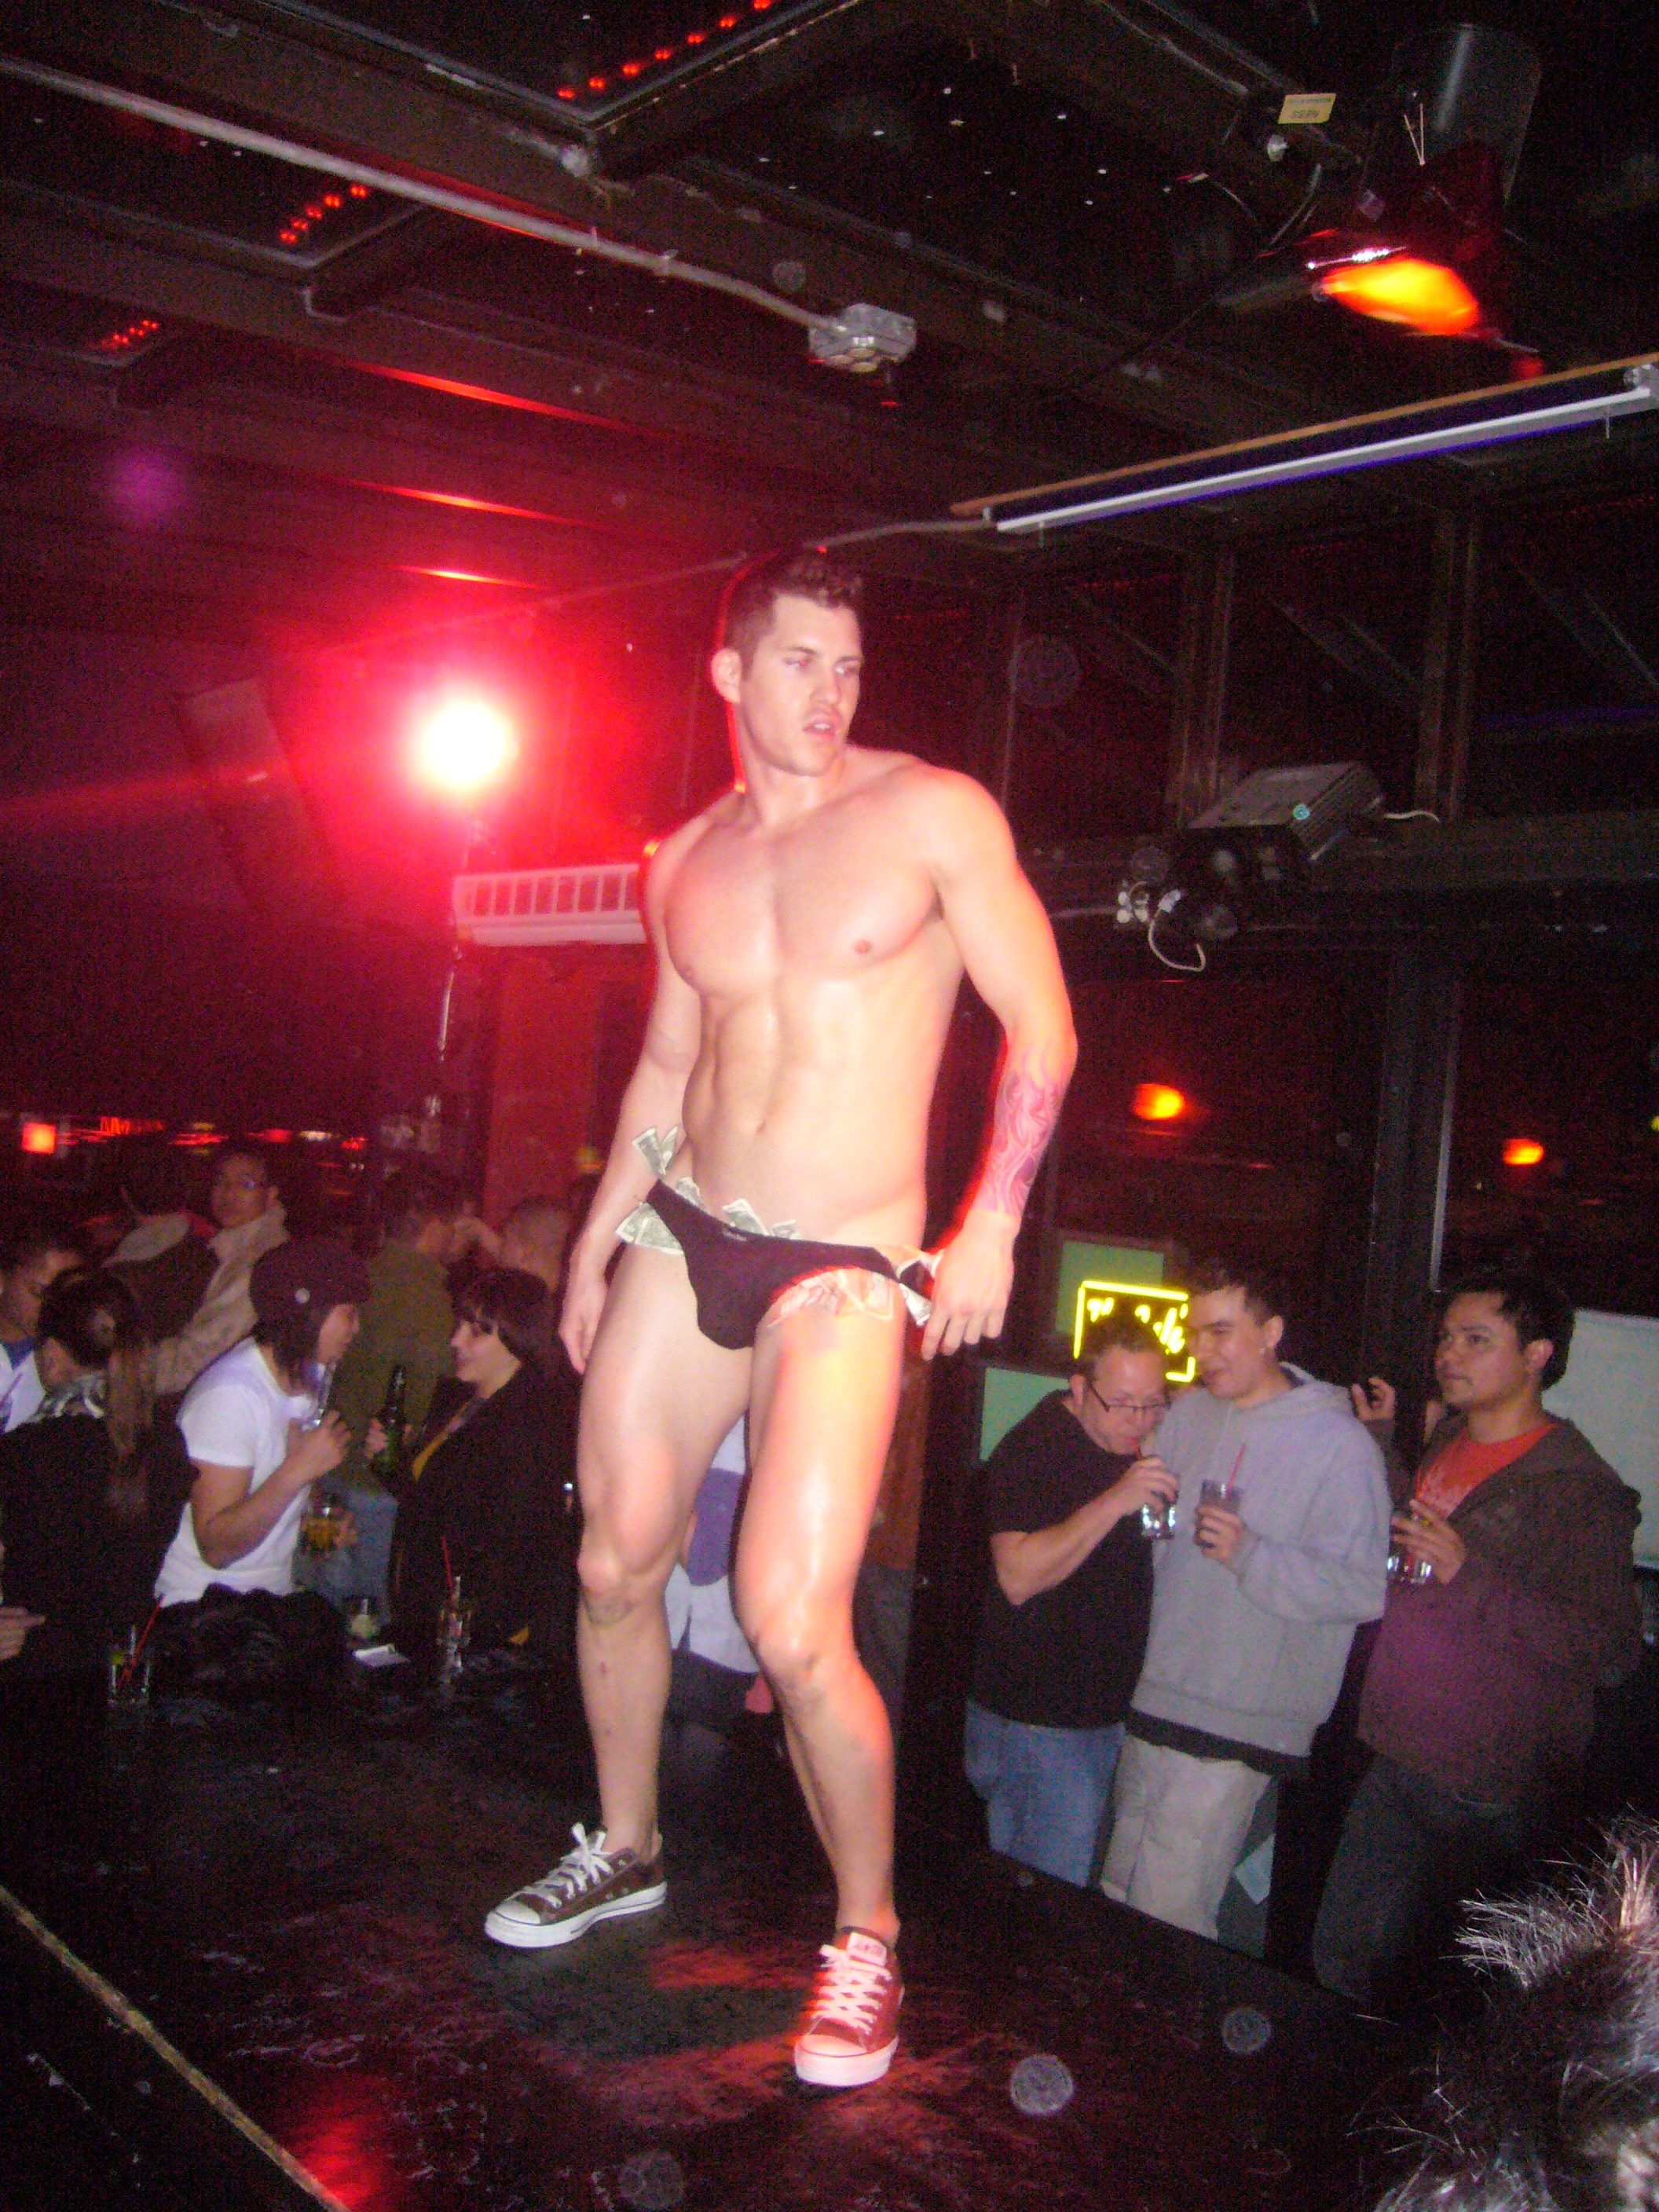 http://upload.wikimedia.org/wikipedia/commons/1/1e/Male_stripper_San_Francisco_January_2009.jpg